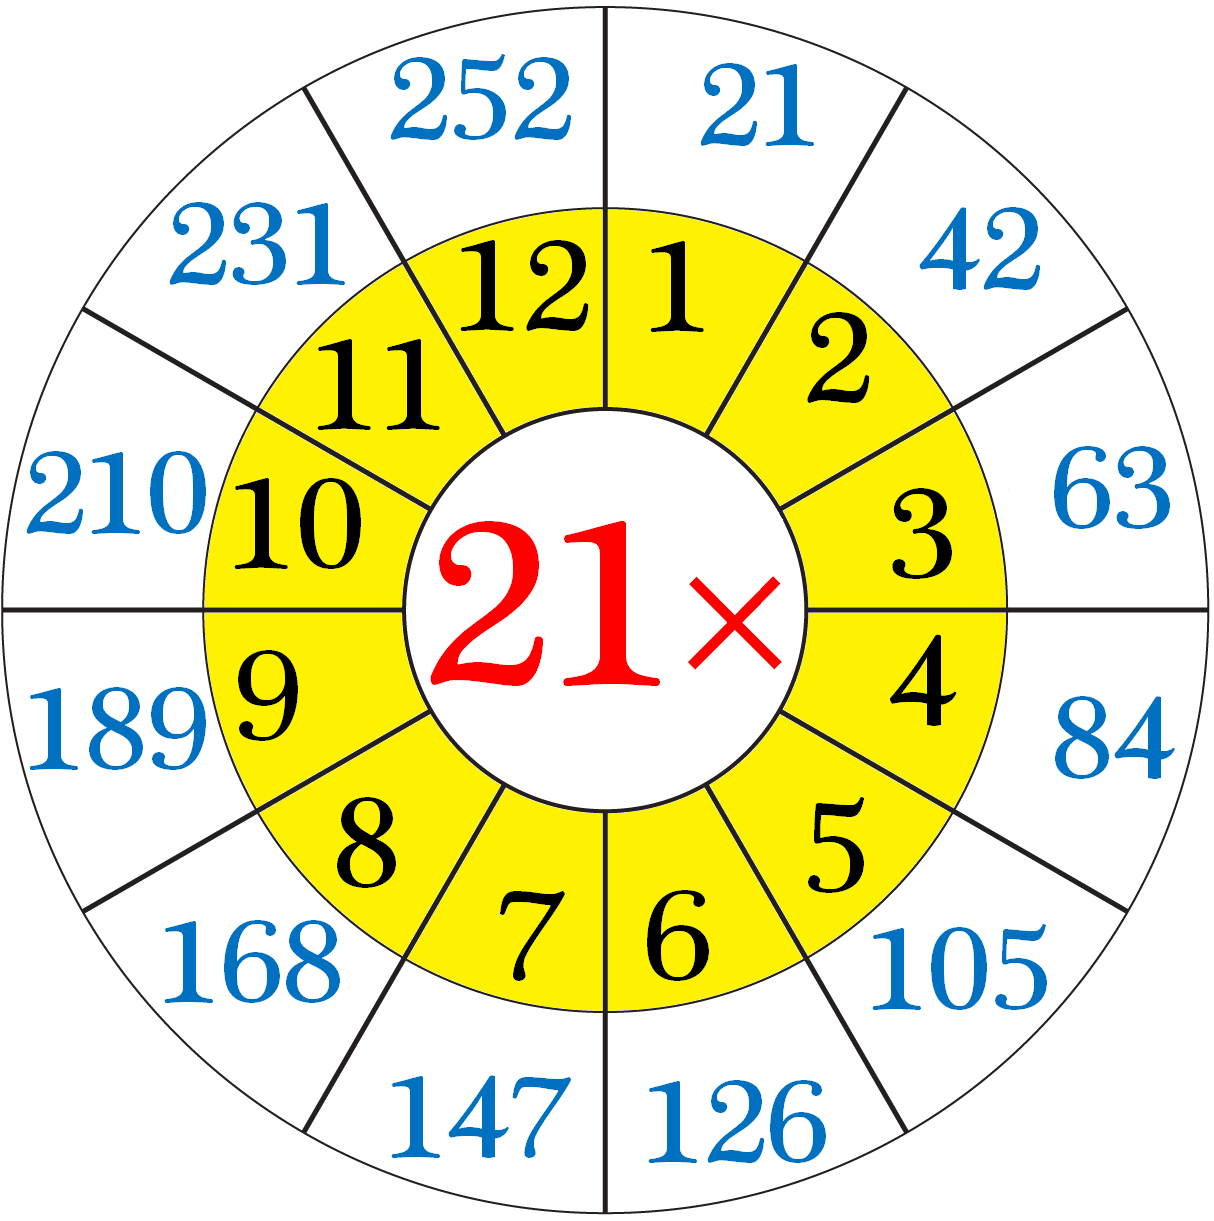 Multiplication Table of Twenty-One